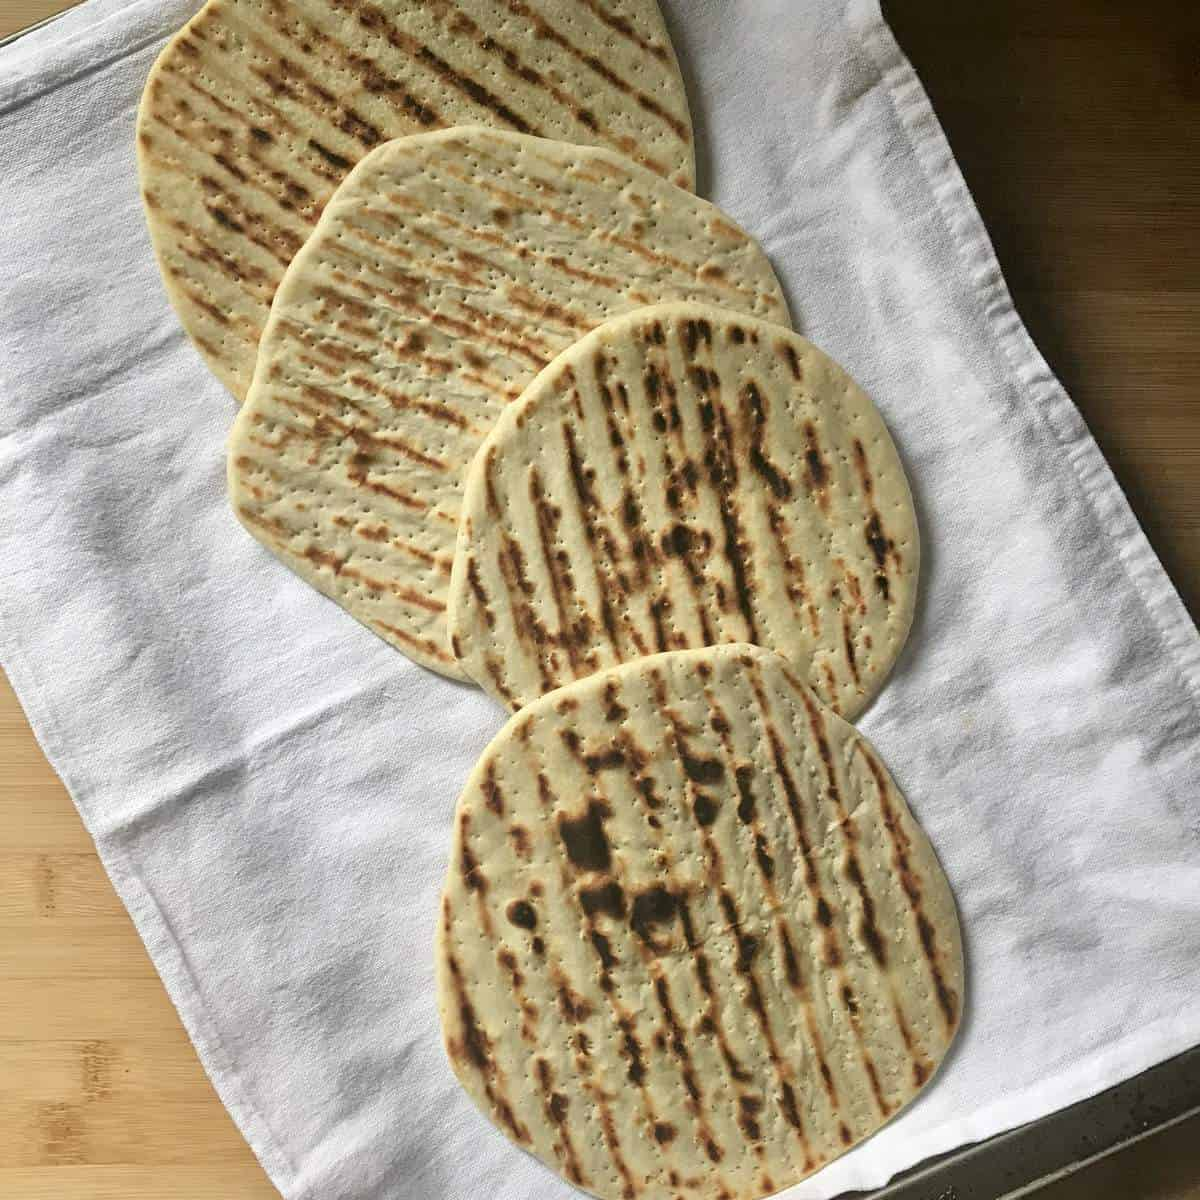 Grilled piadina in a tea towel.